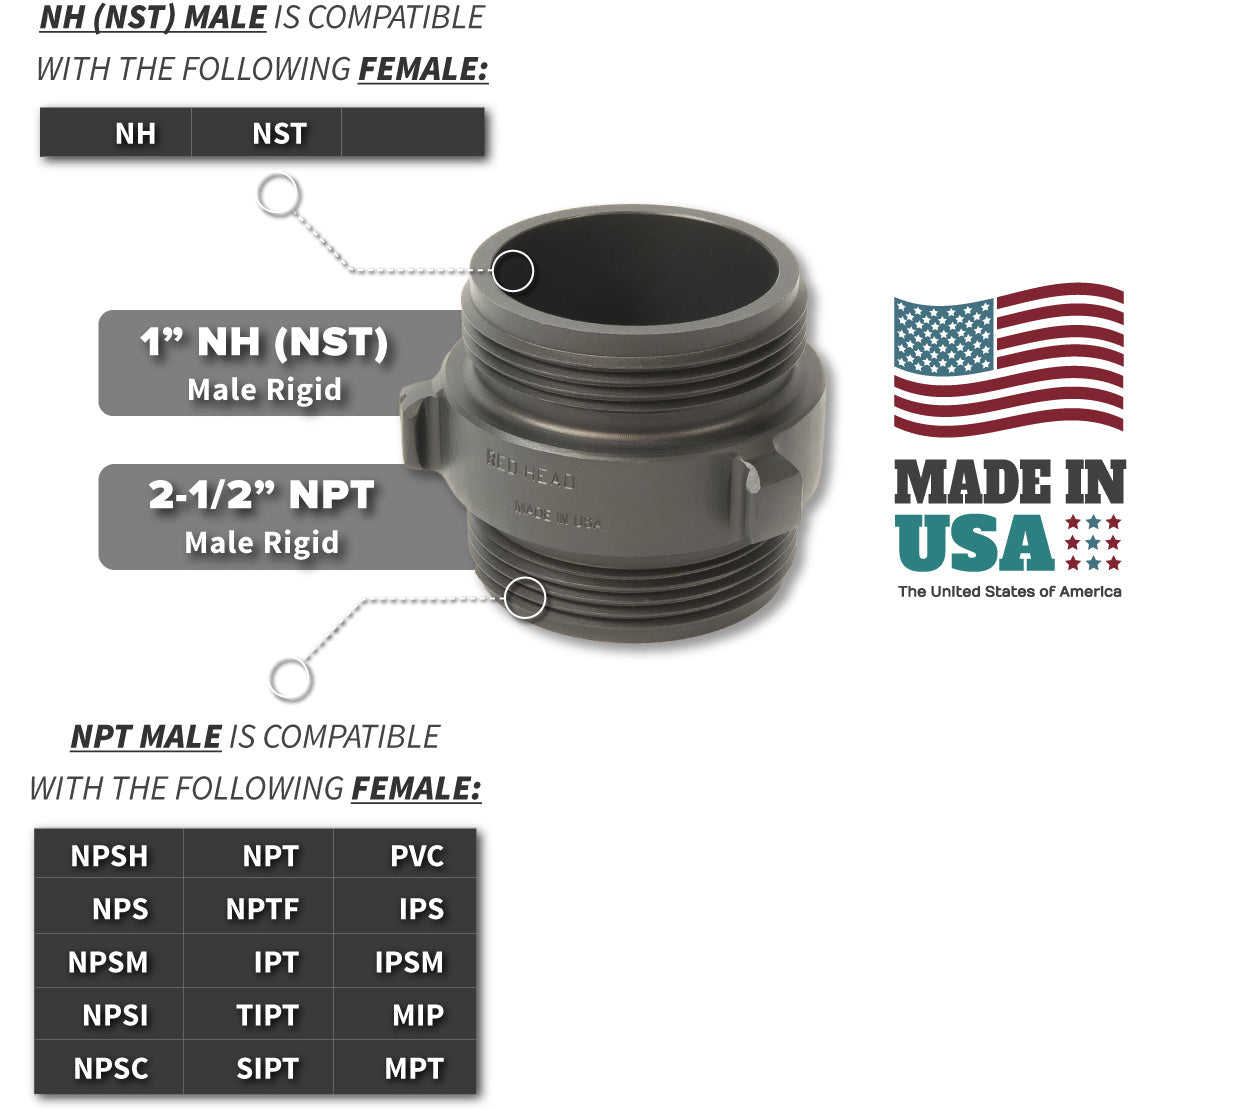 1 Inch NH-NST Male x 2.5 Inch NPT Male Compatibility Thread Chart